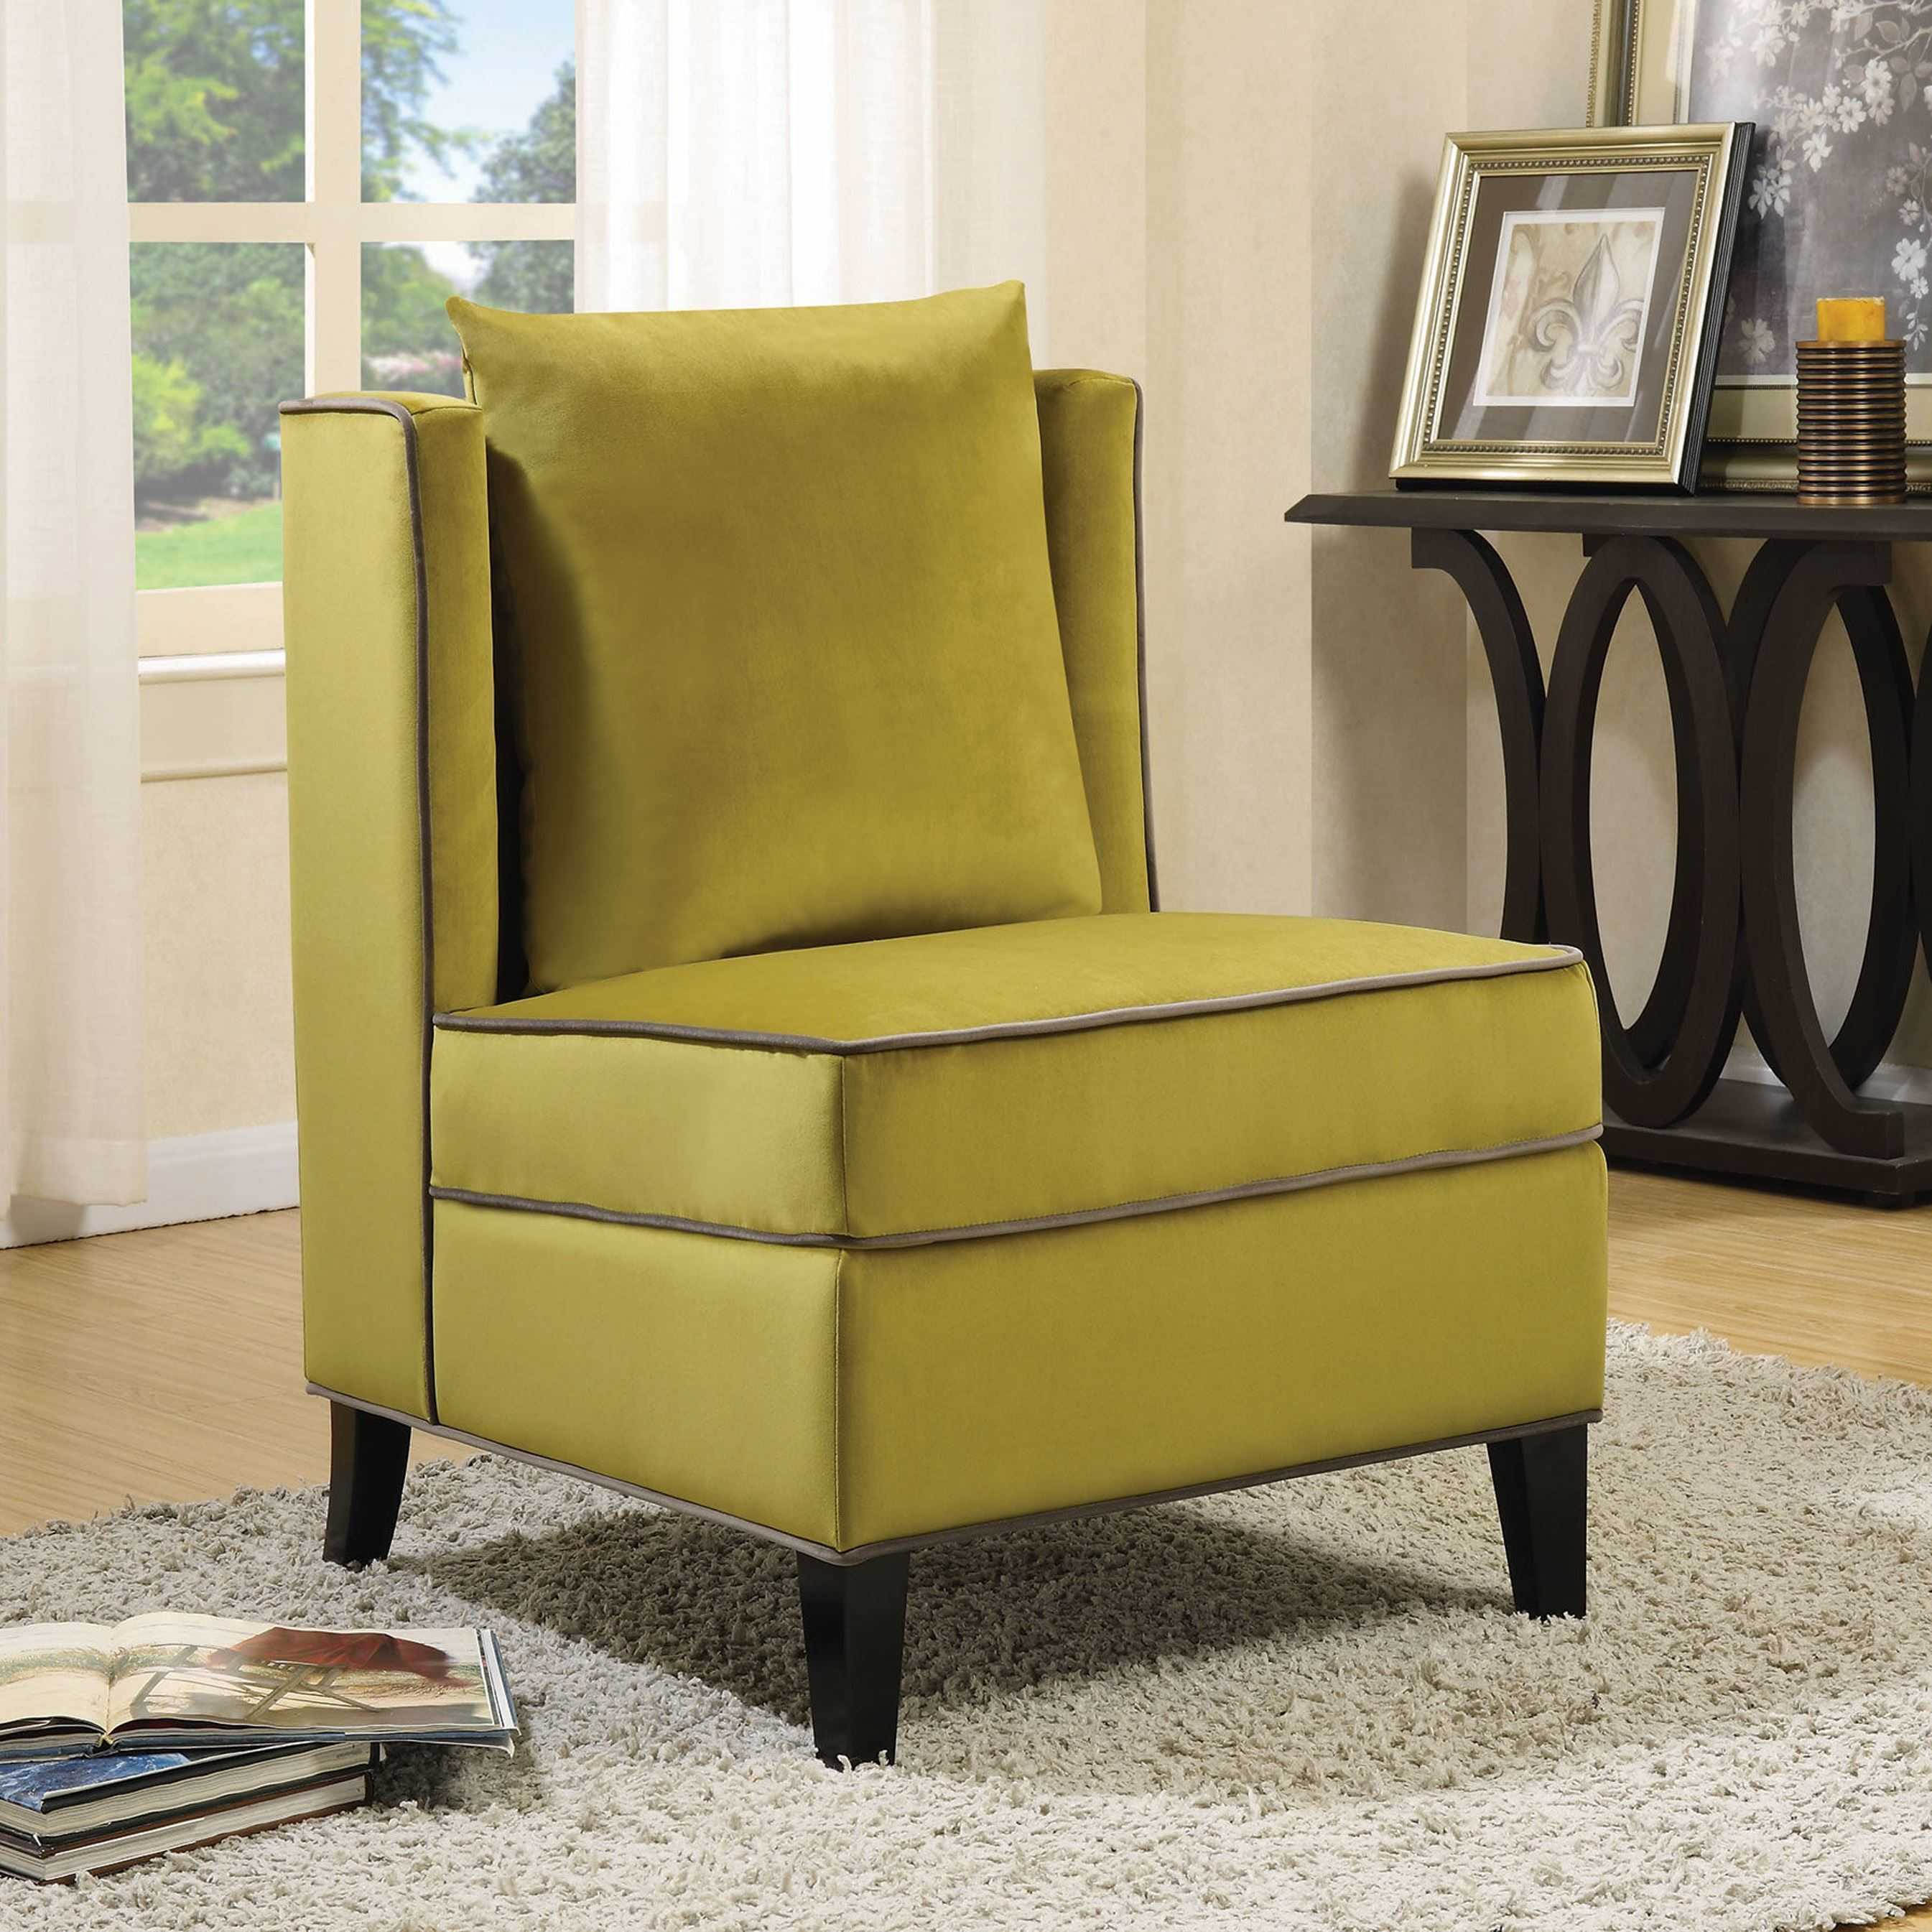 Shop Living Room Yellow Velvet Accent Chair With Grey Piping   Free  Shipping Today   Overstock.com   16287359